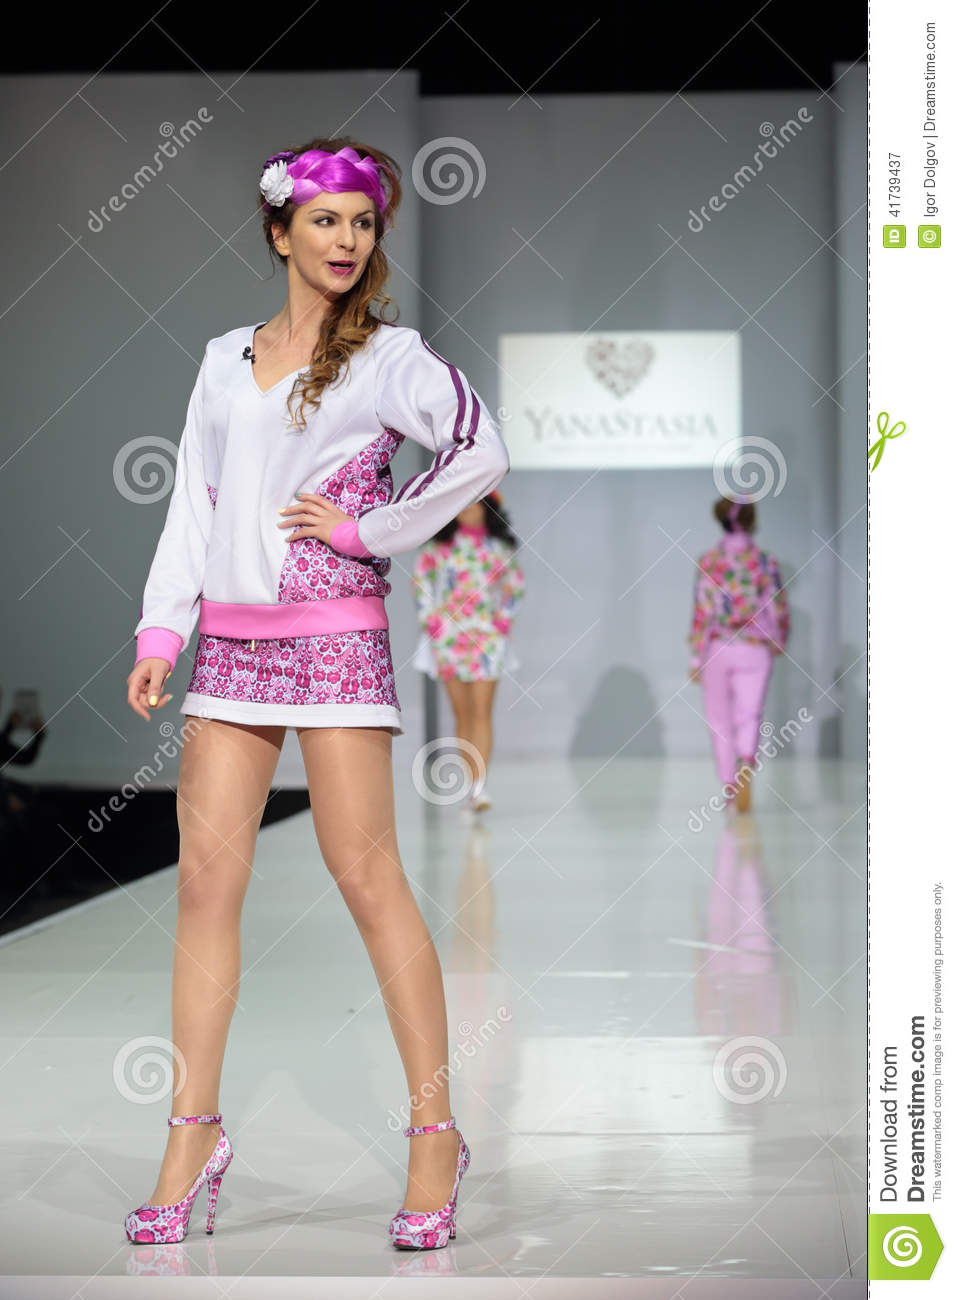 Moscow Fashion Week Editorial Photography Image 41739437